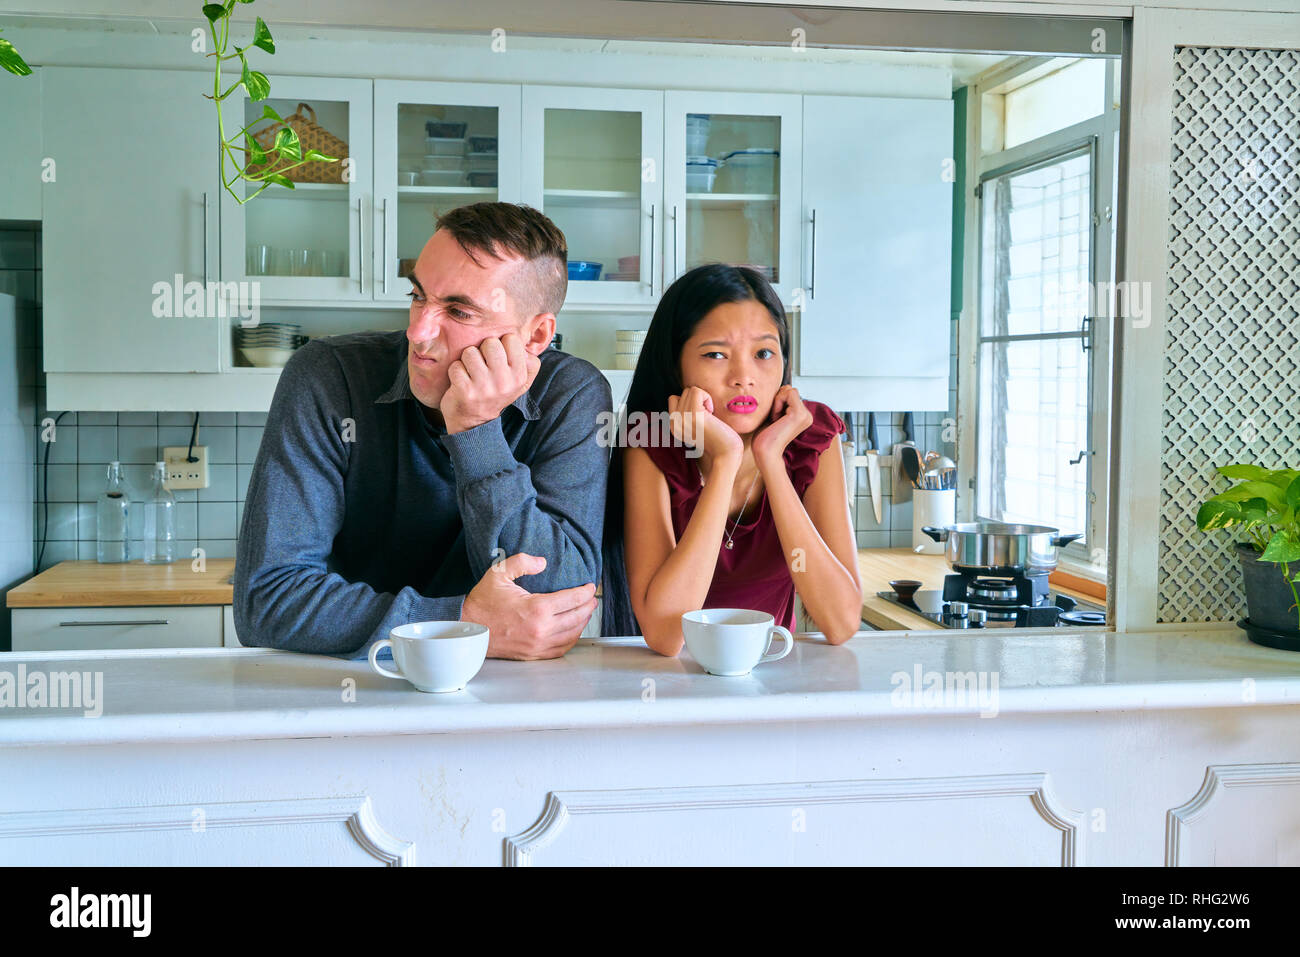 Lovely couple posing - fighting each other and misunderstanding - Stock Image